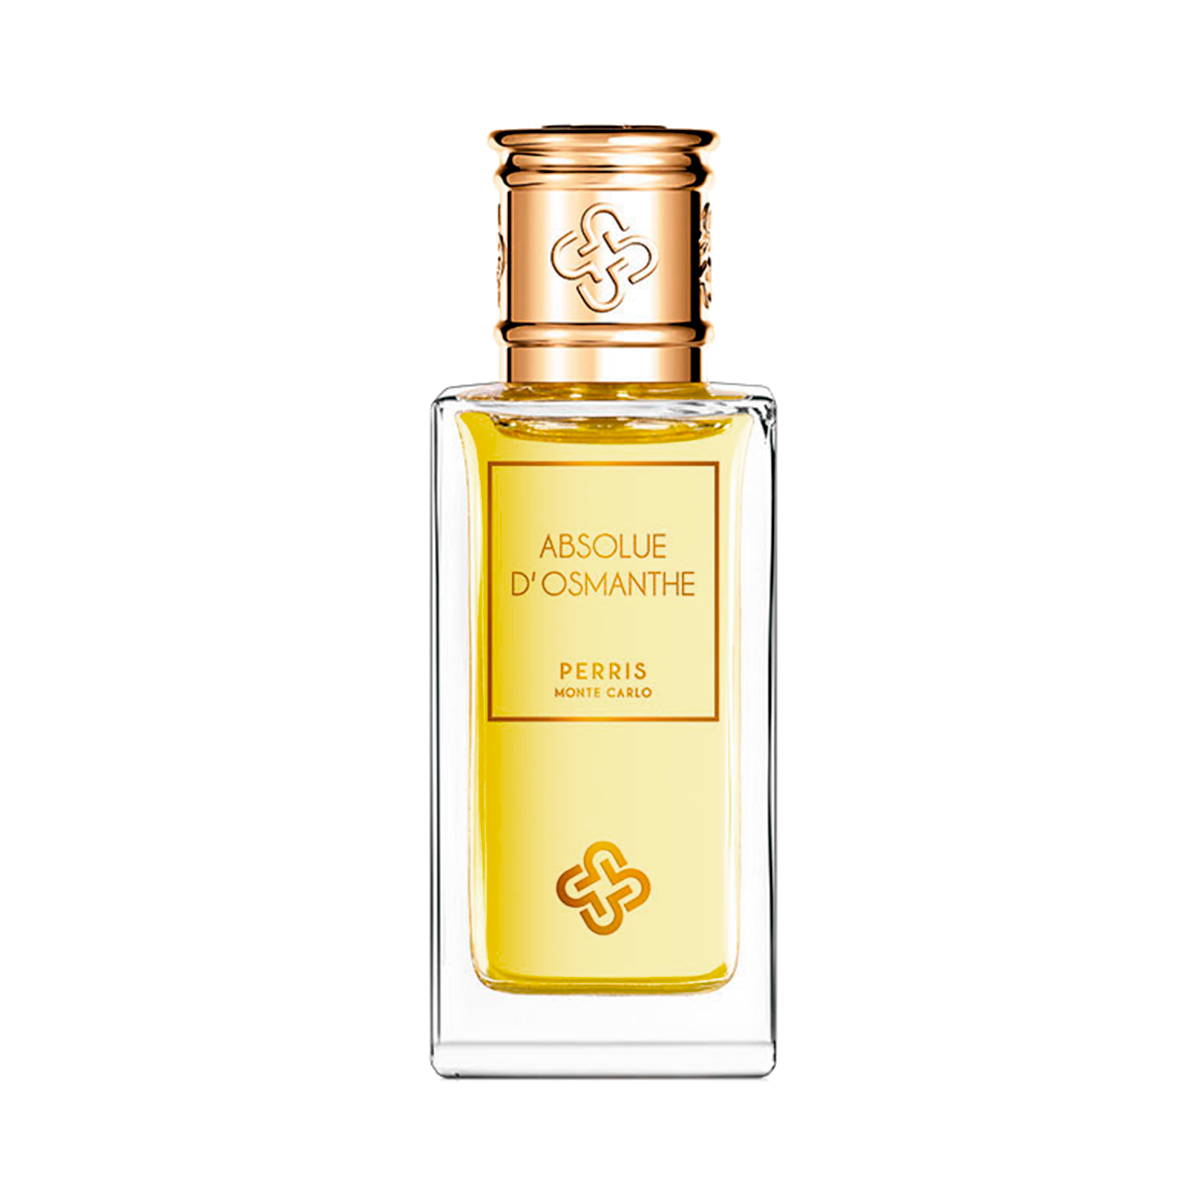 Absolute D'Osmanthe - Perris Monte Carlo - EP 50ml